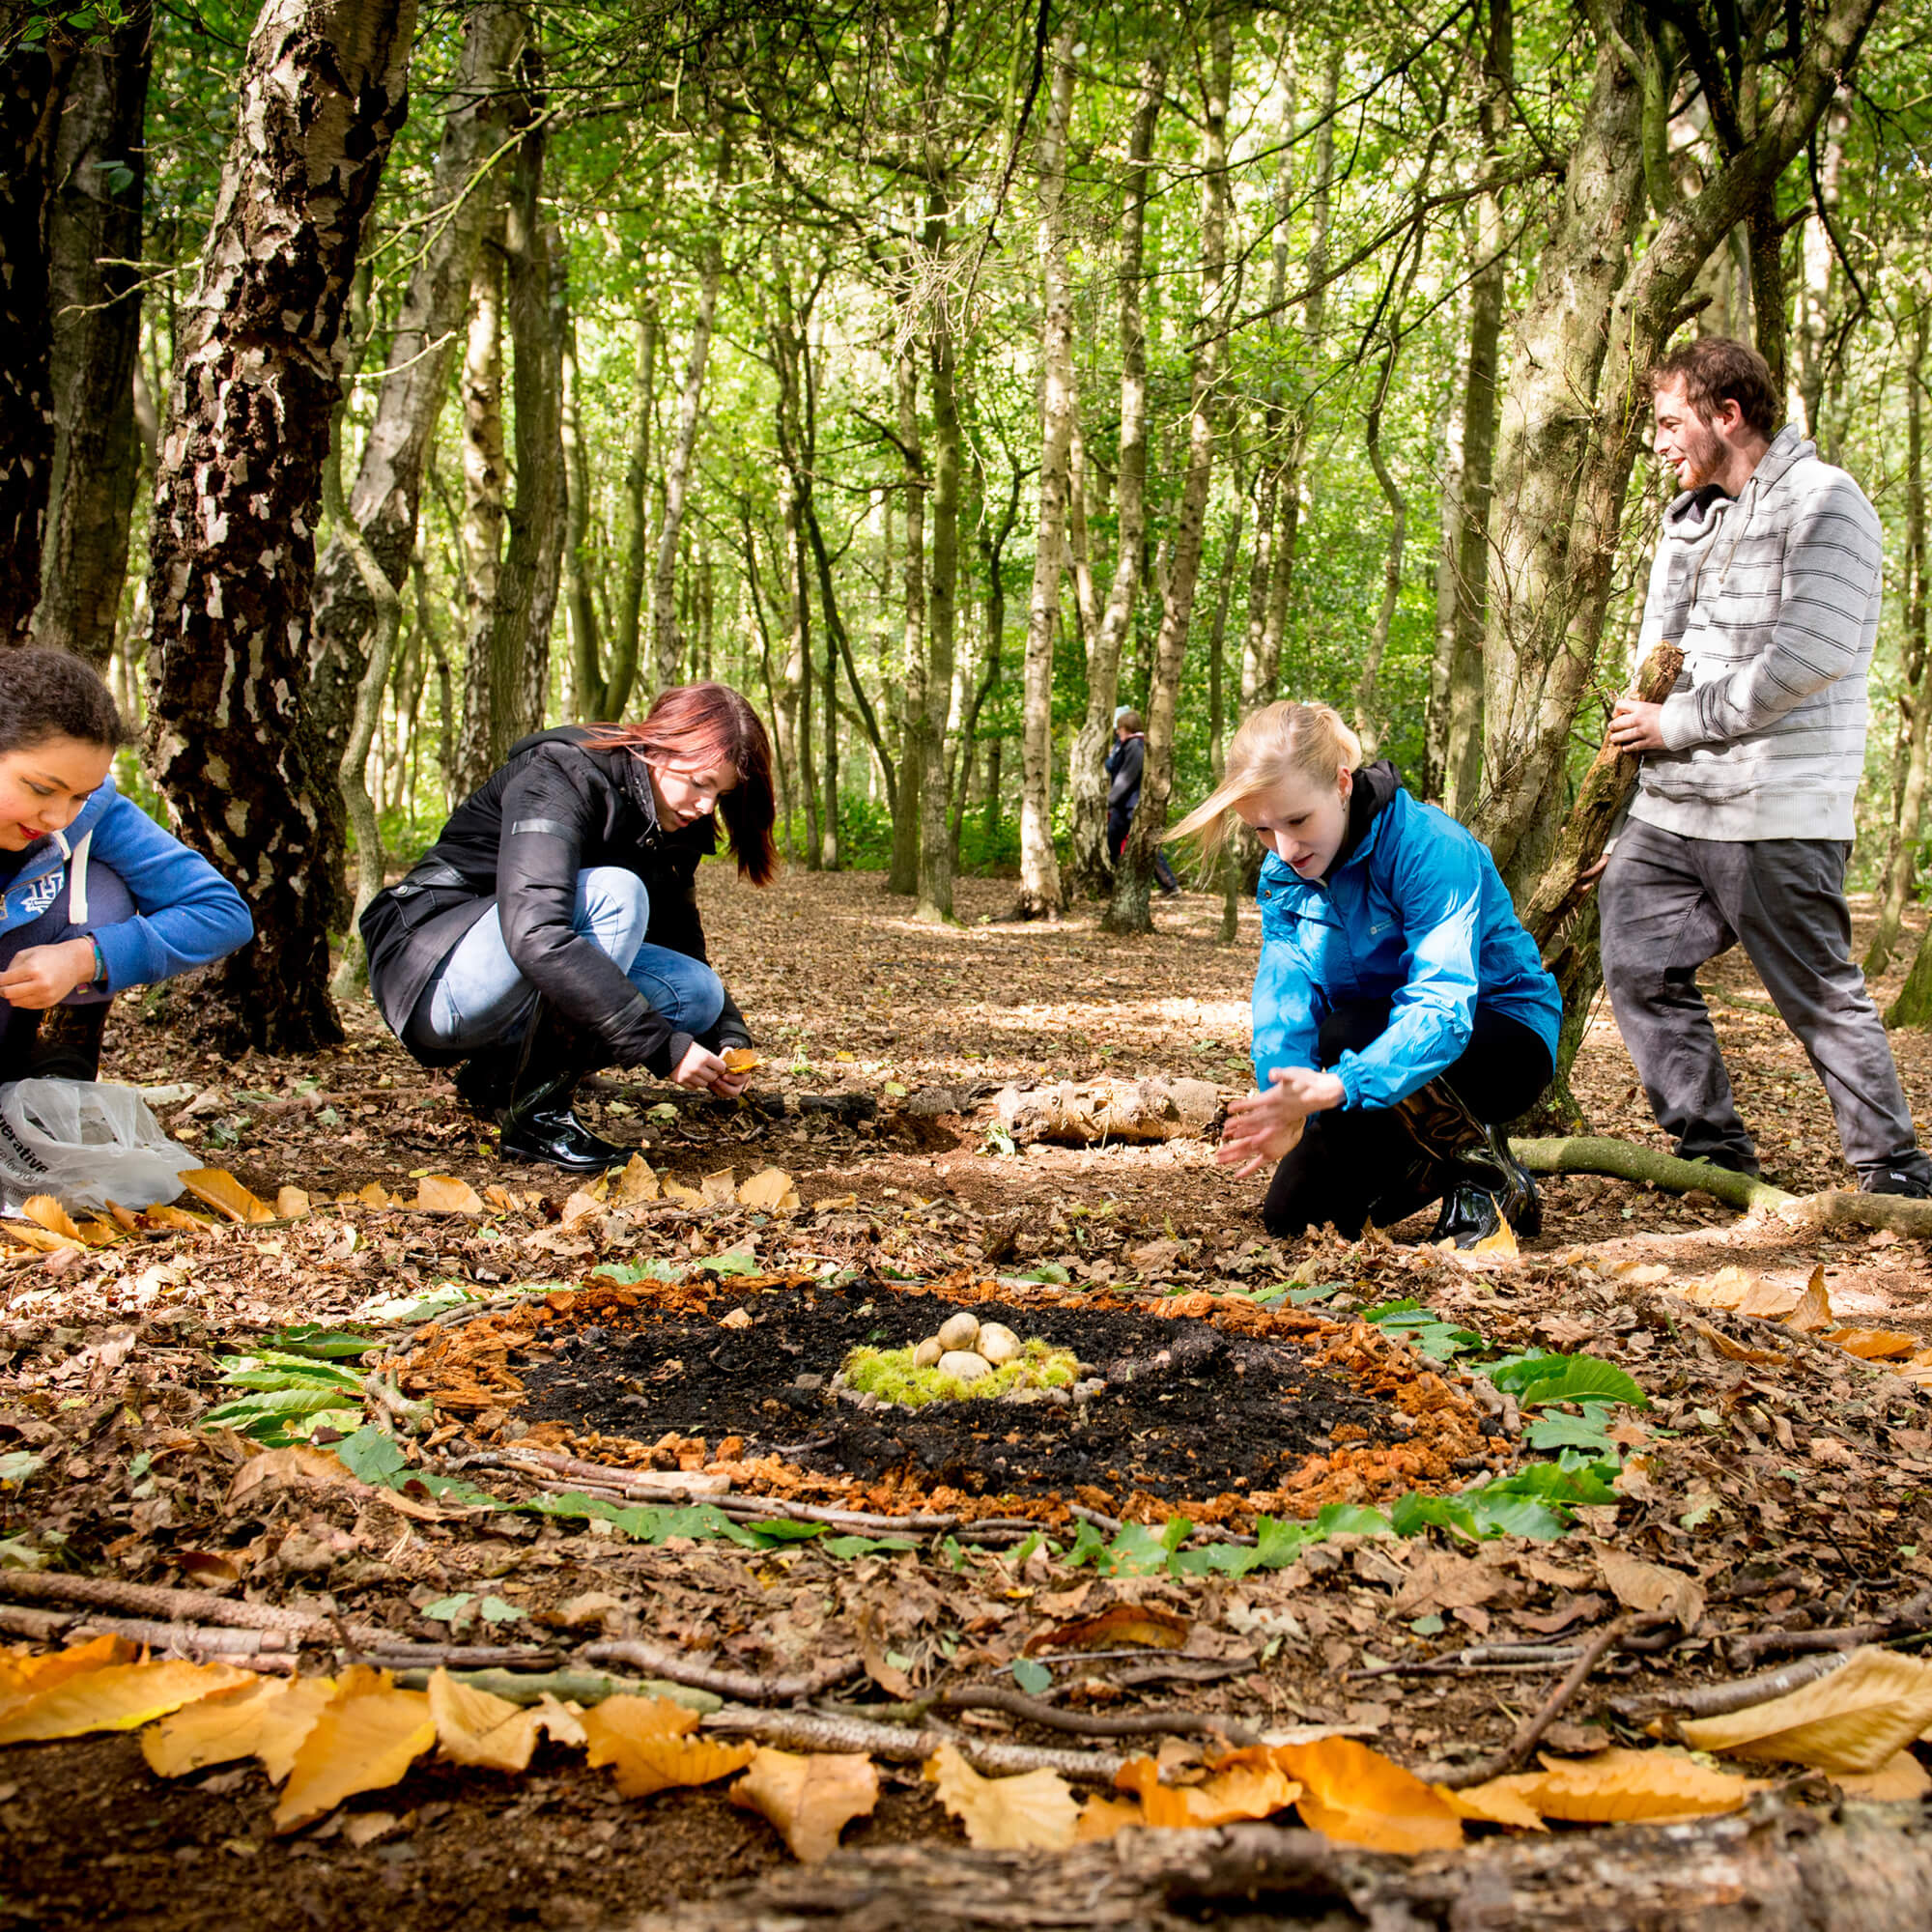 A group of people in outdoor clothing position leaves, sticks and stones in circular patterns in the woods